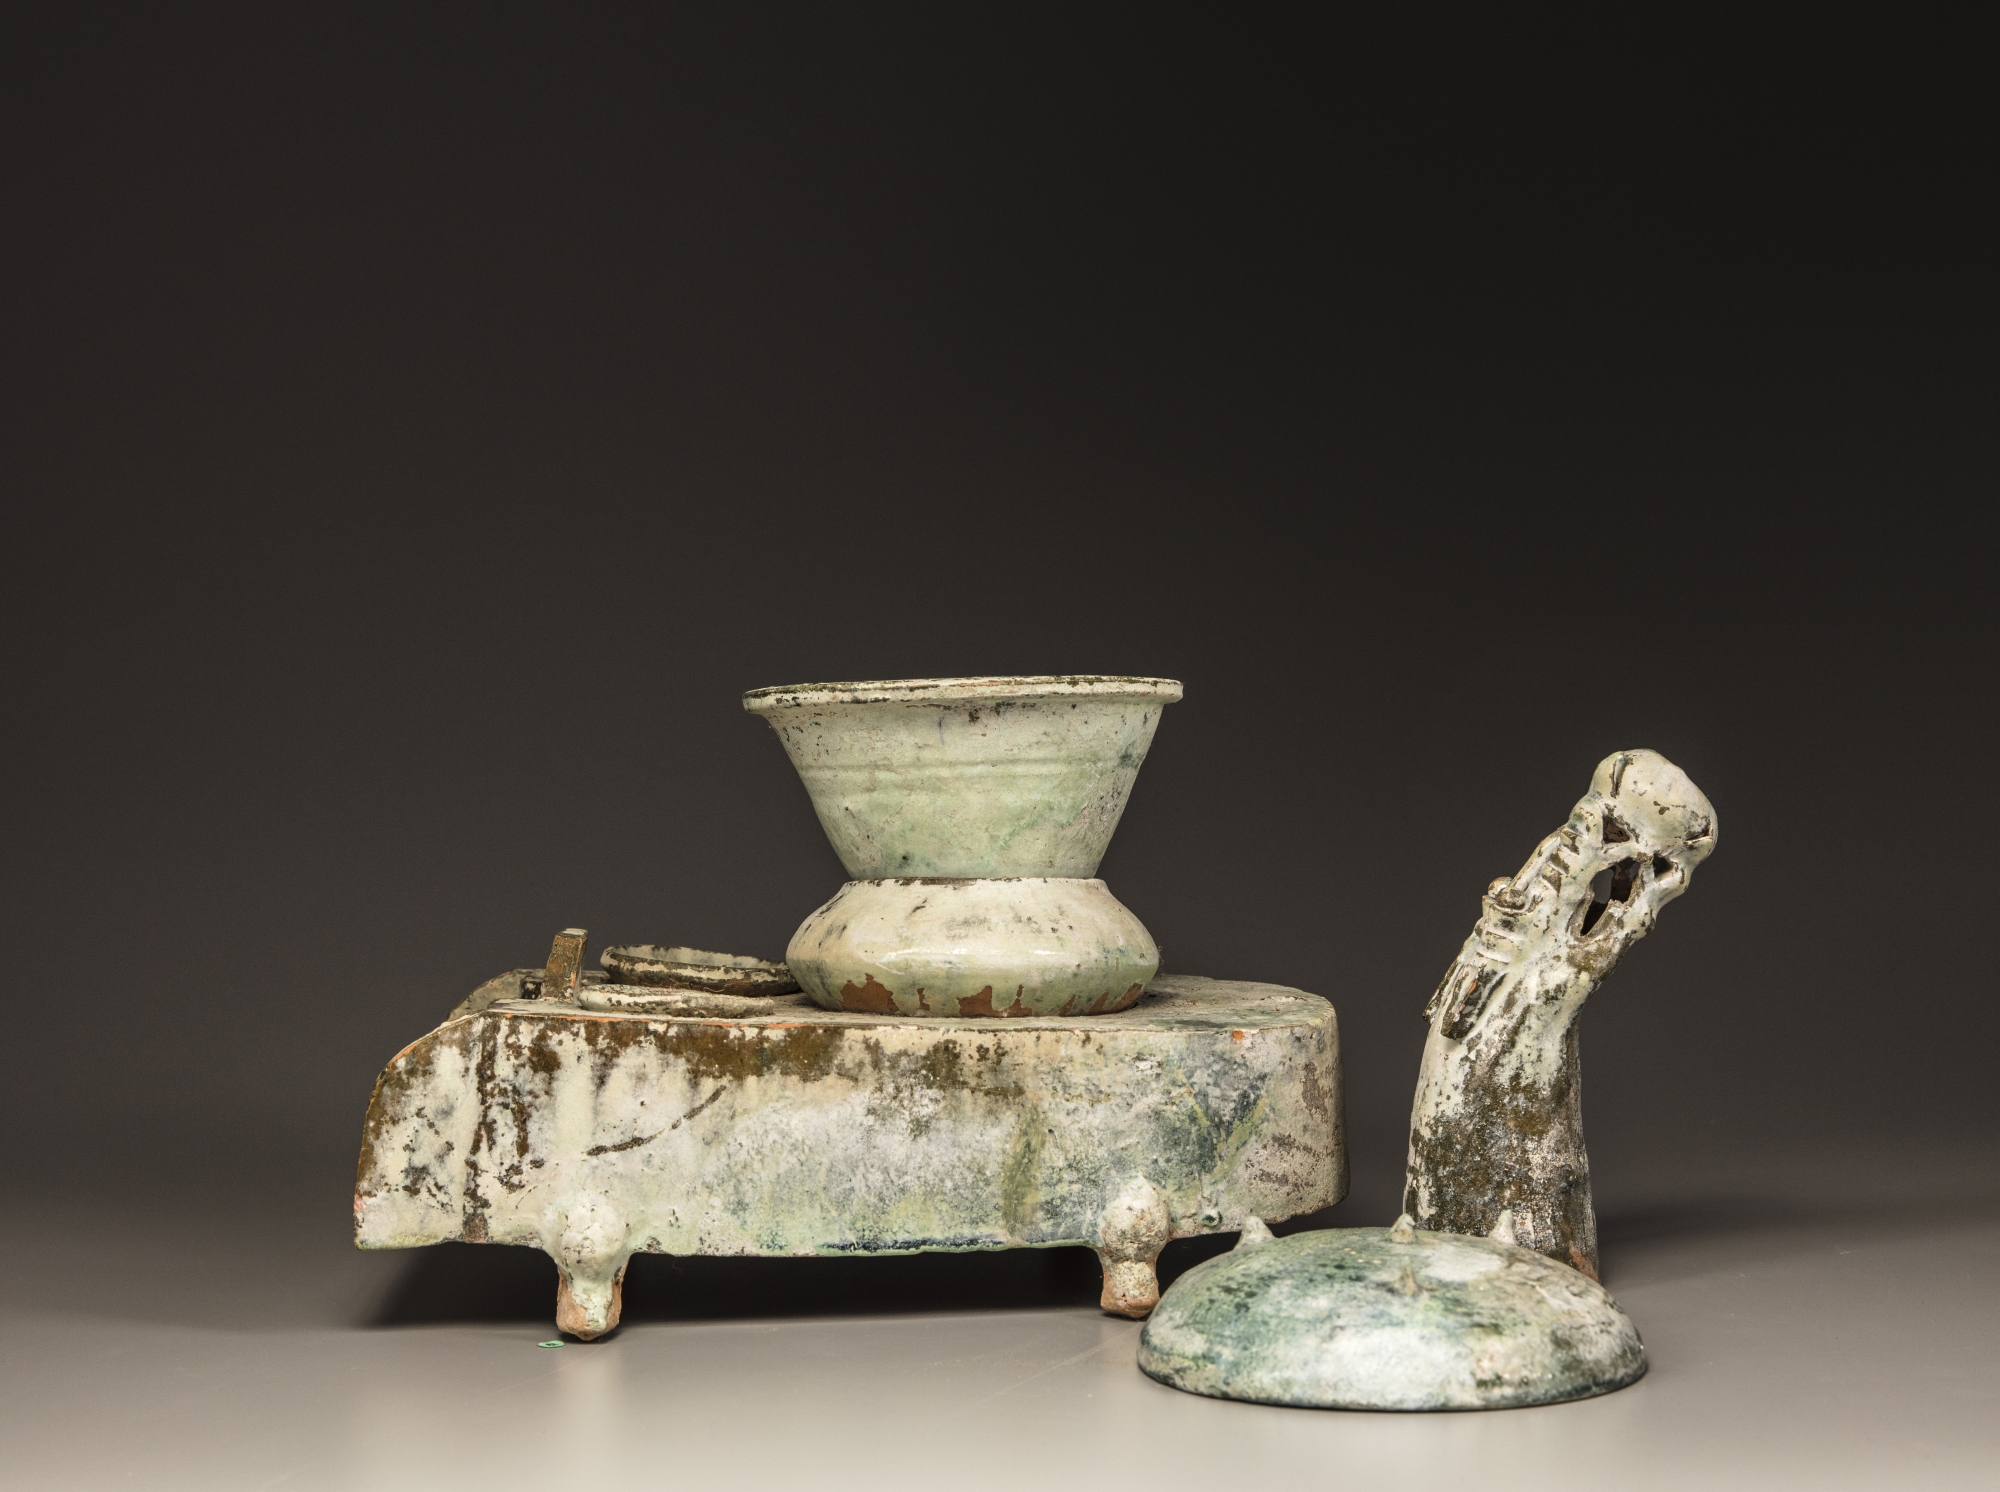 Lot 5 - A Chinese green-glazed pottery stove with a dragon chimney